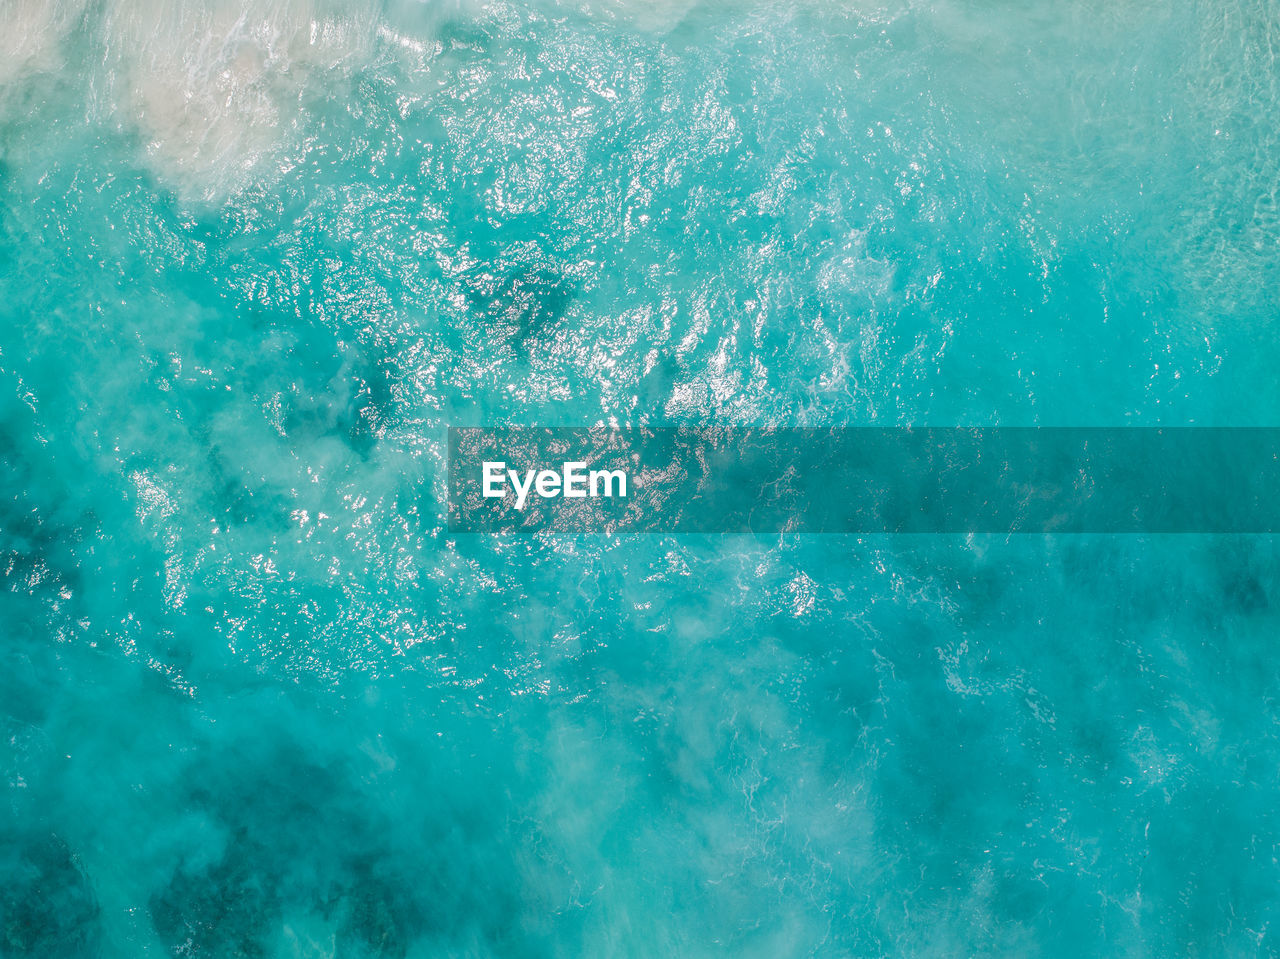 full frame, blue, backgrounds, water, textured, nature, no people, turquoise colored, pattern, sea, bubble, close-up, outdoors, beauty in nature, motion, food and drink, abstract, refreshment, high angle view, swimming pool, textured effect, clean